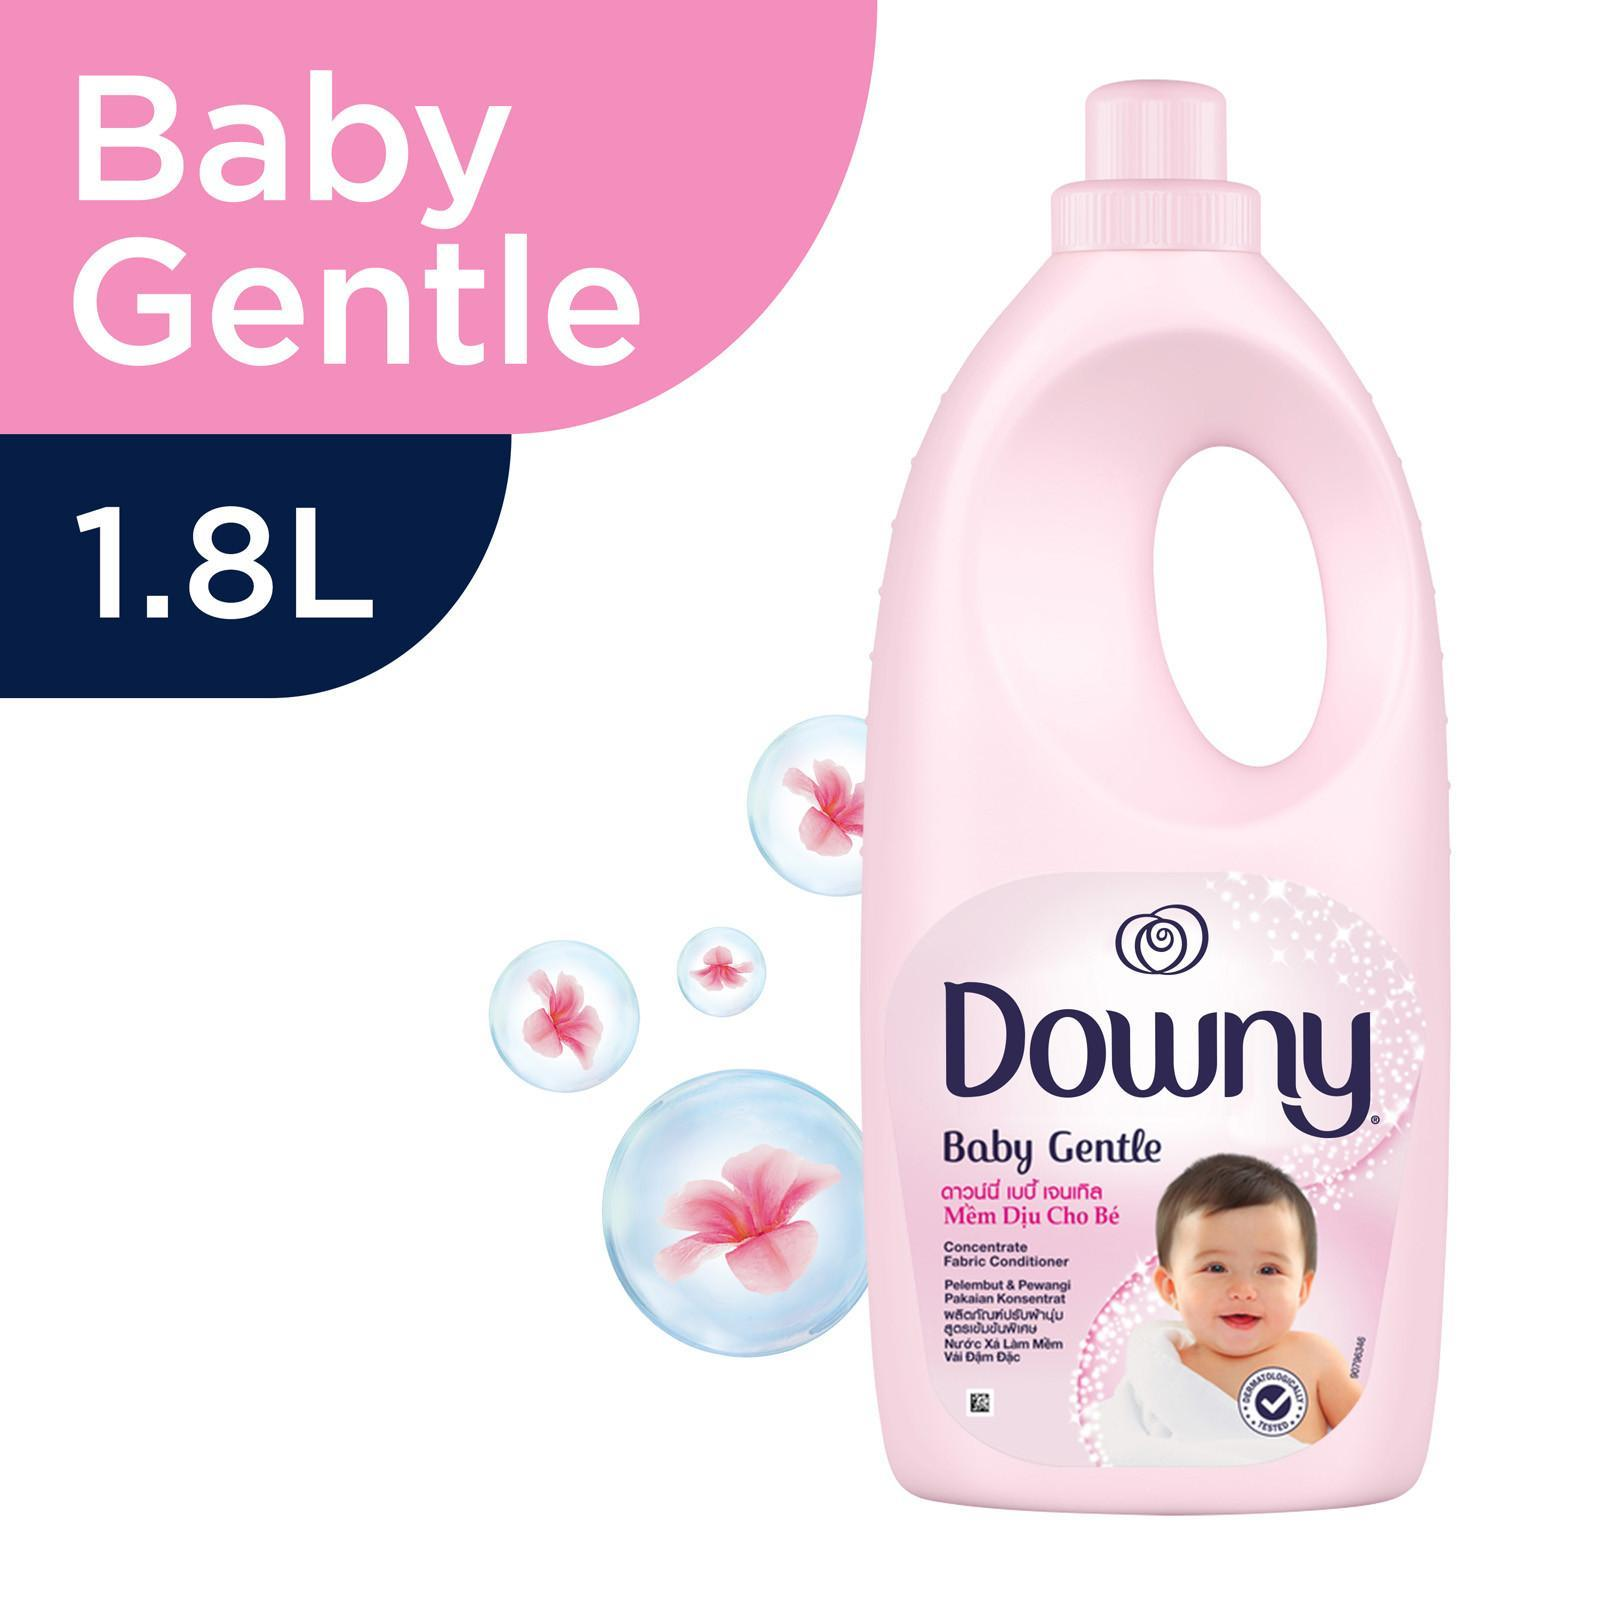 Downy Baby Gentle Concentrate Fabric Softener